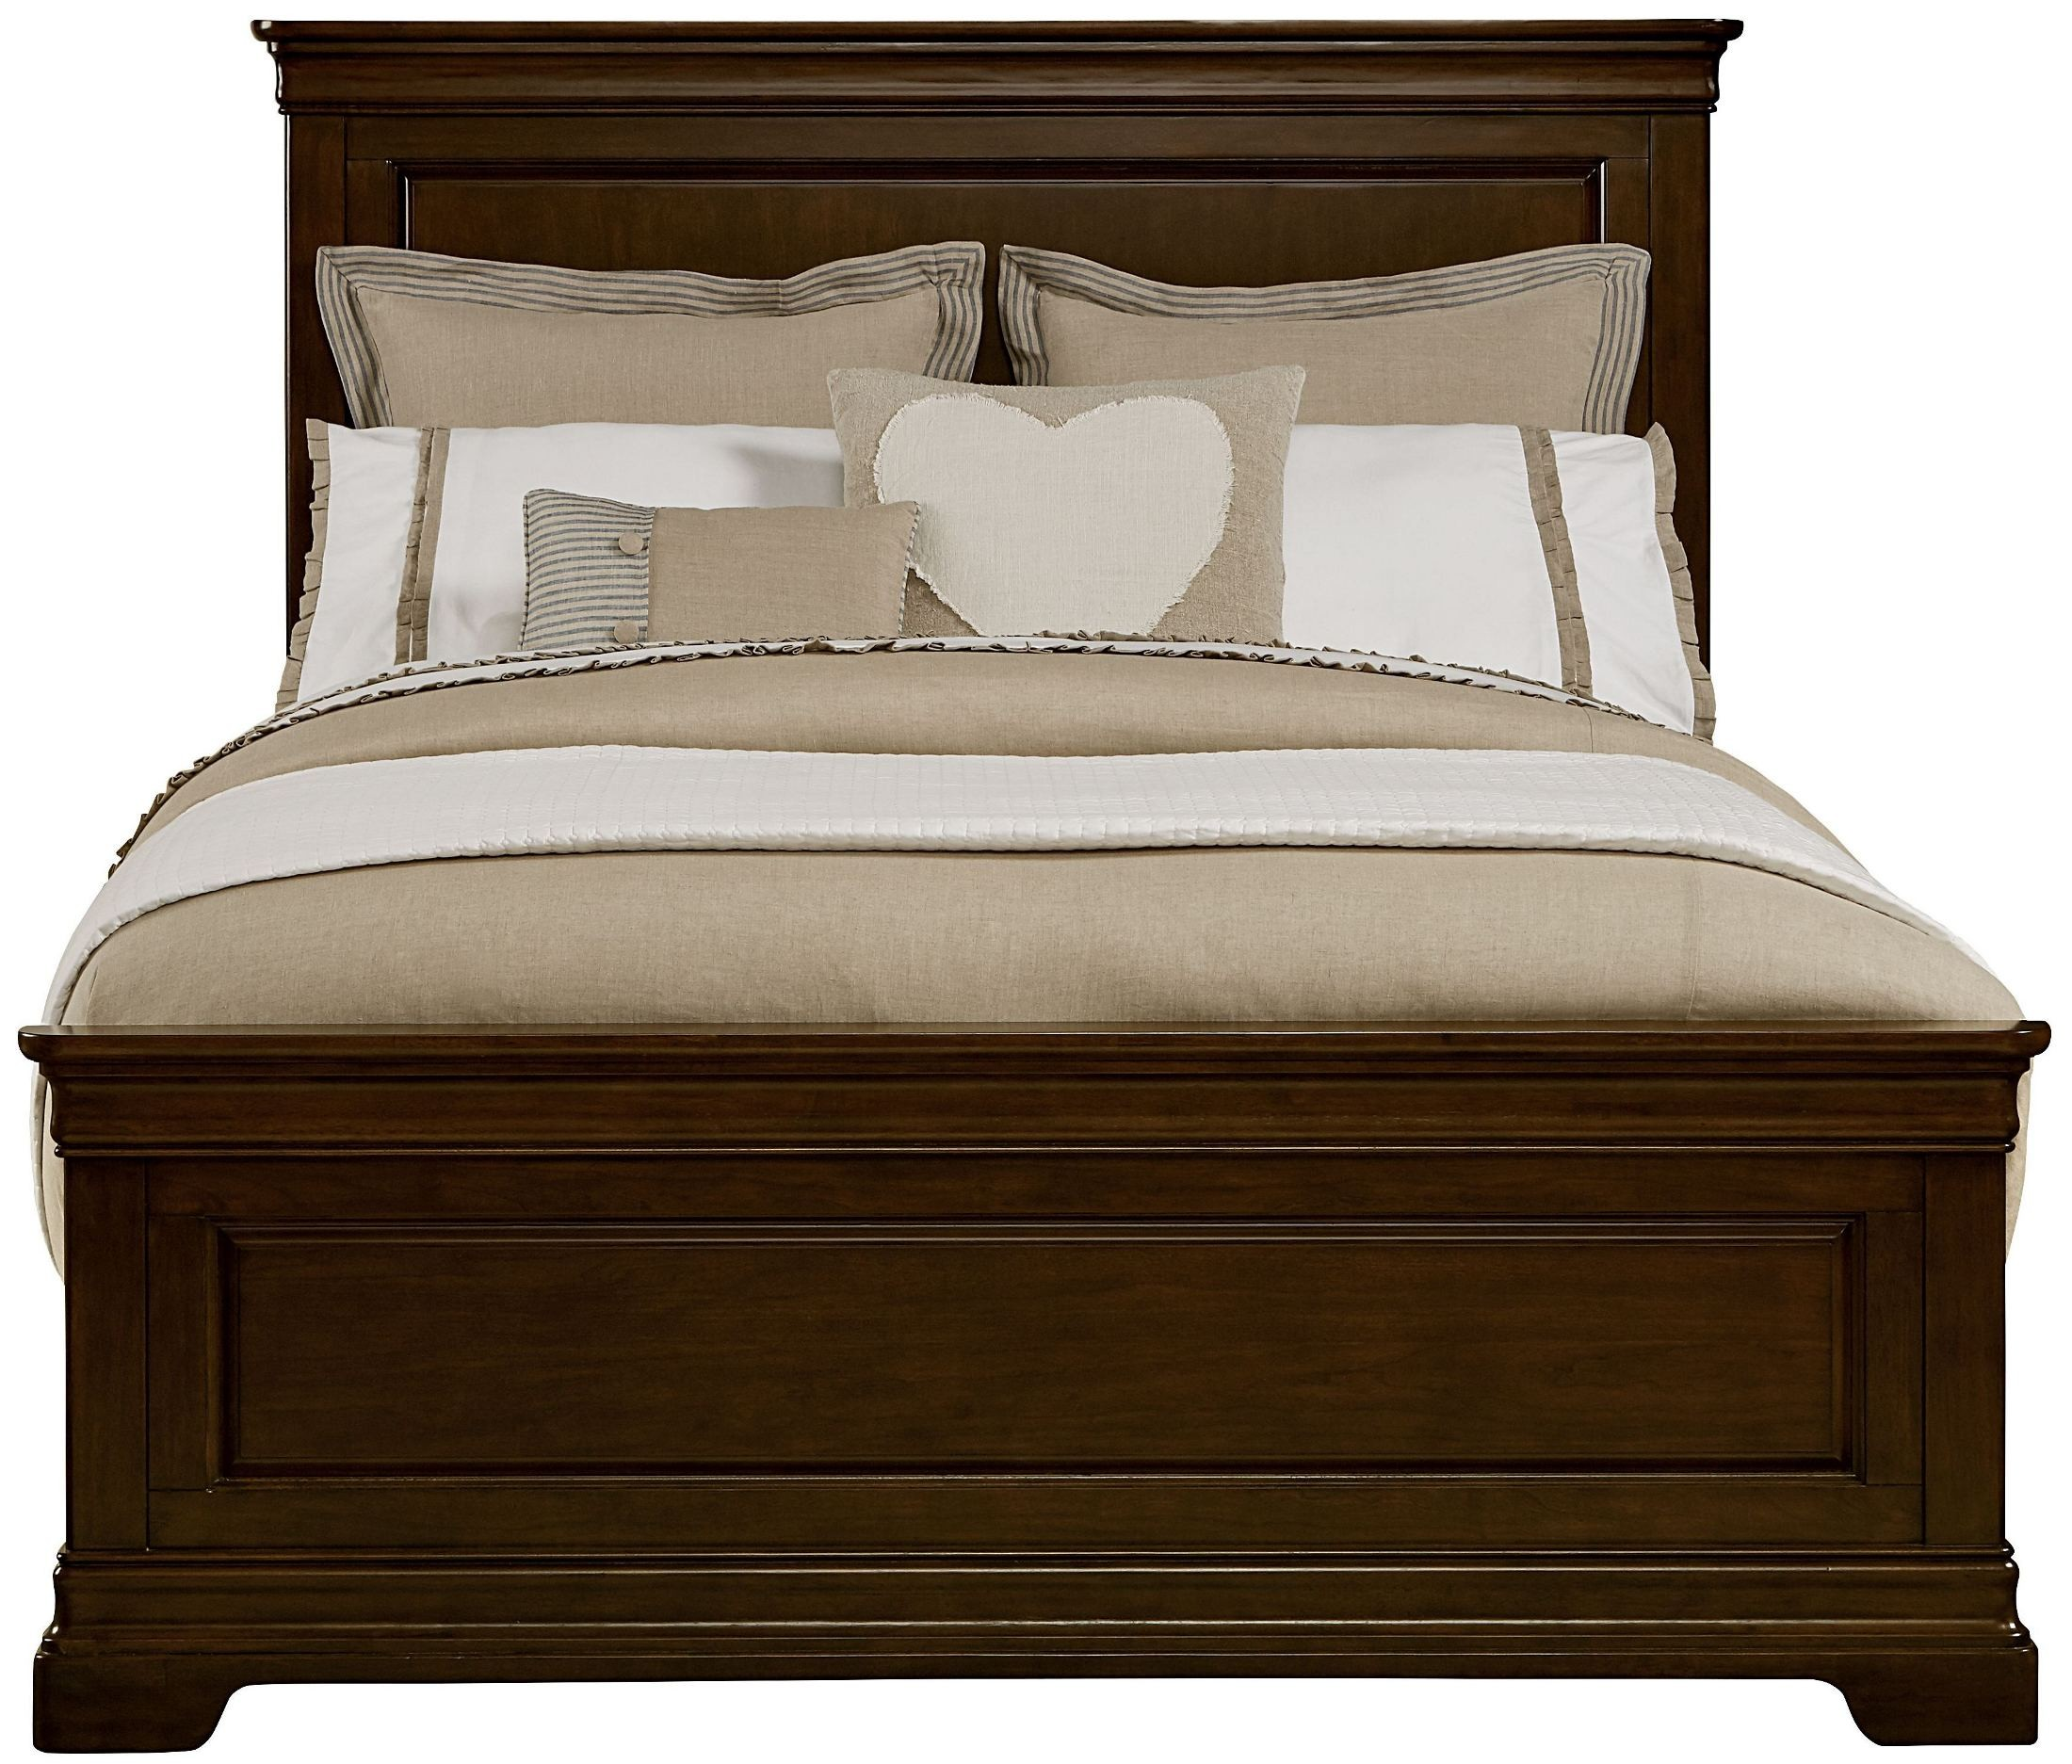 Teaberry Lane Midnight Cherry Panel Bedroom Set 575 13 45 Stone And Leigh